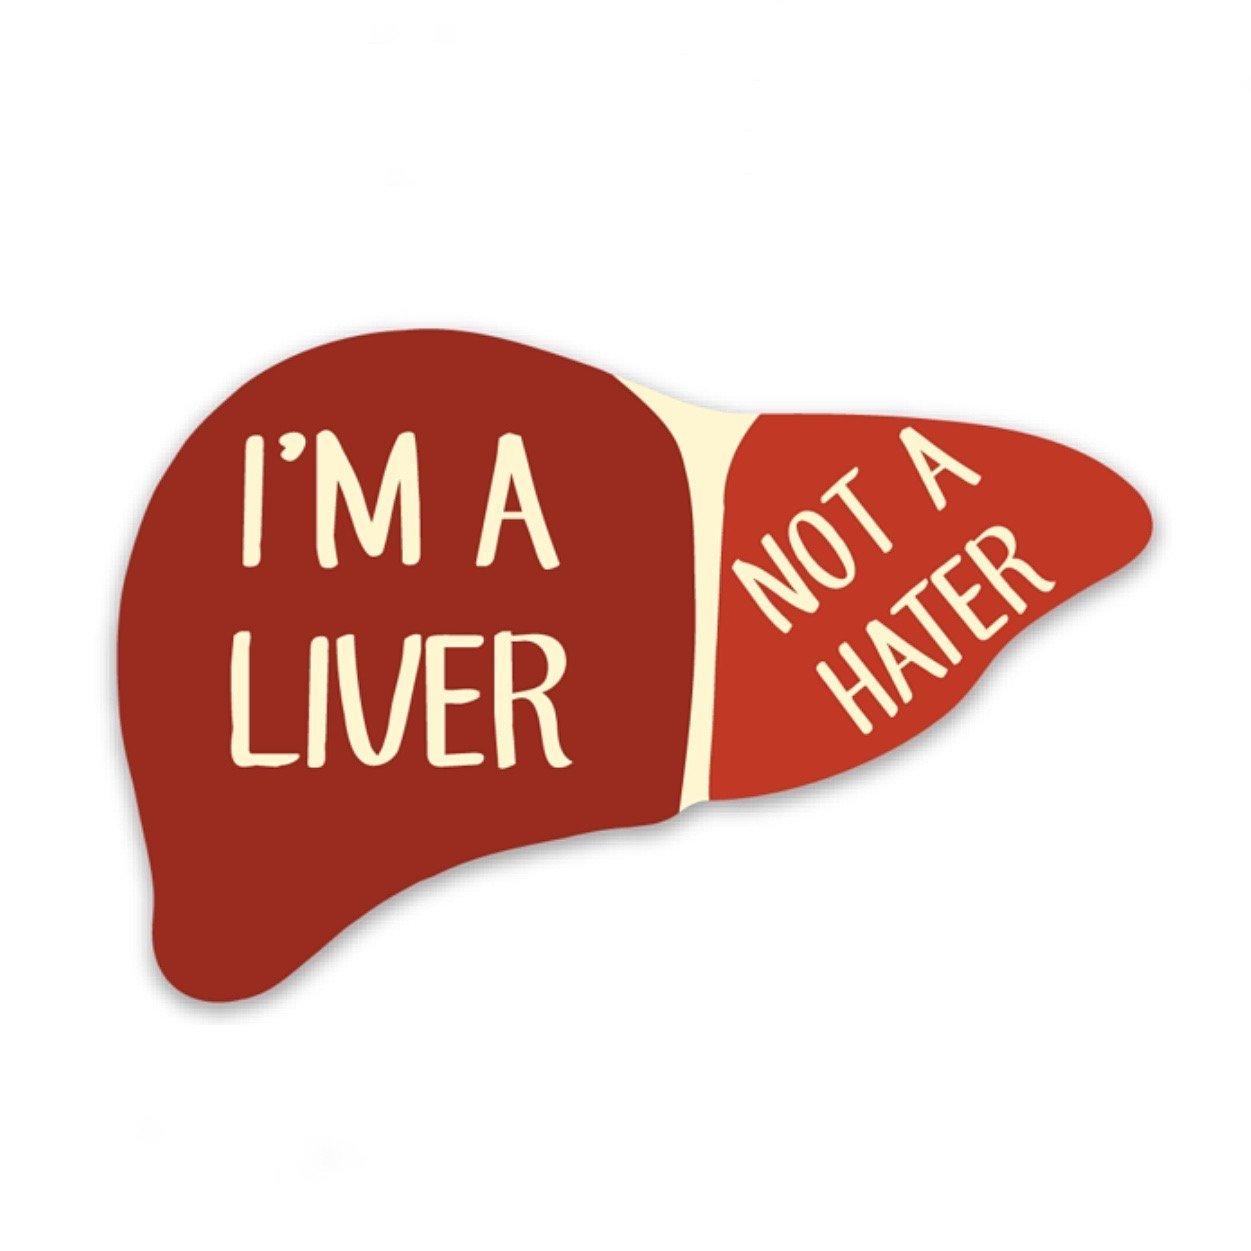 Liver, Not a Hater Decal - Rad Girl Creations